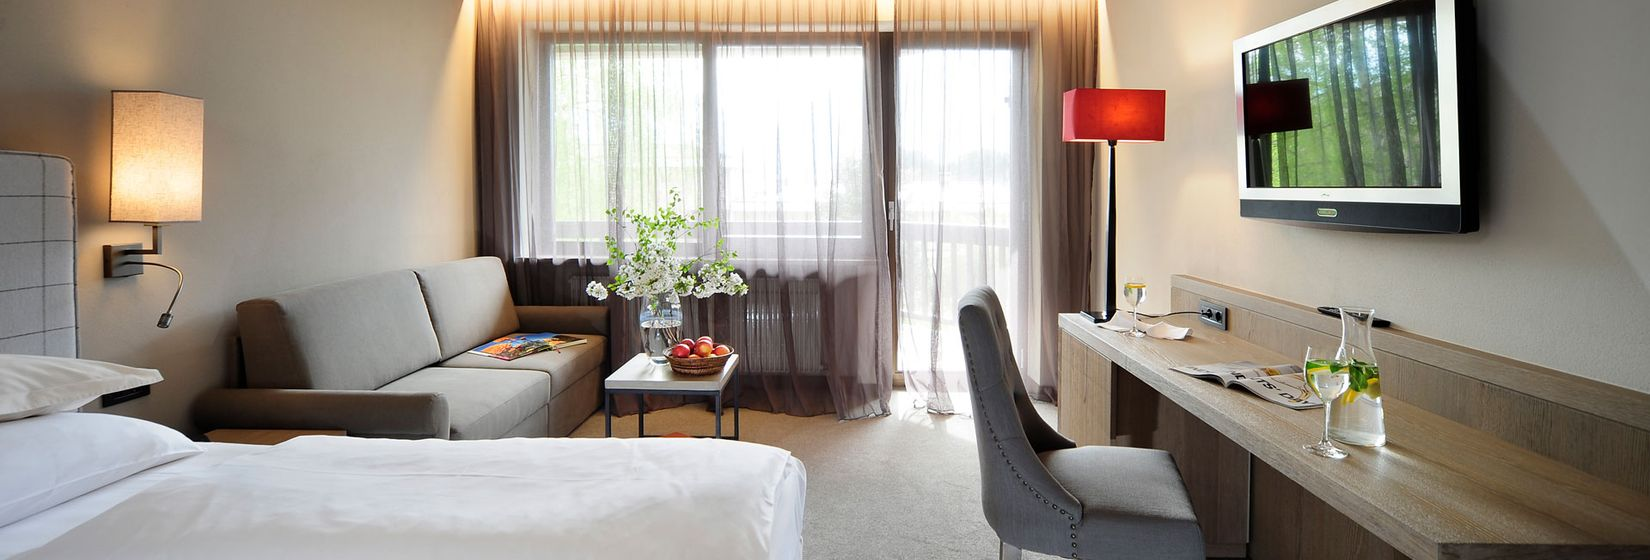 rooms merano south tyrol